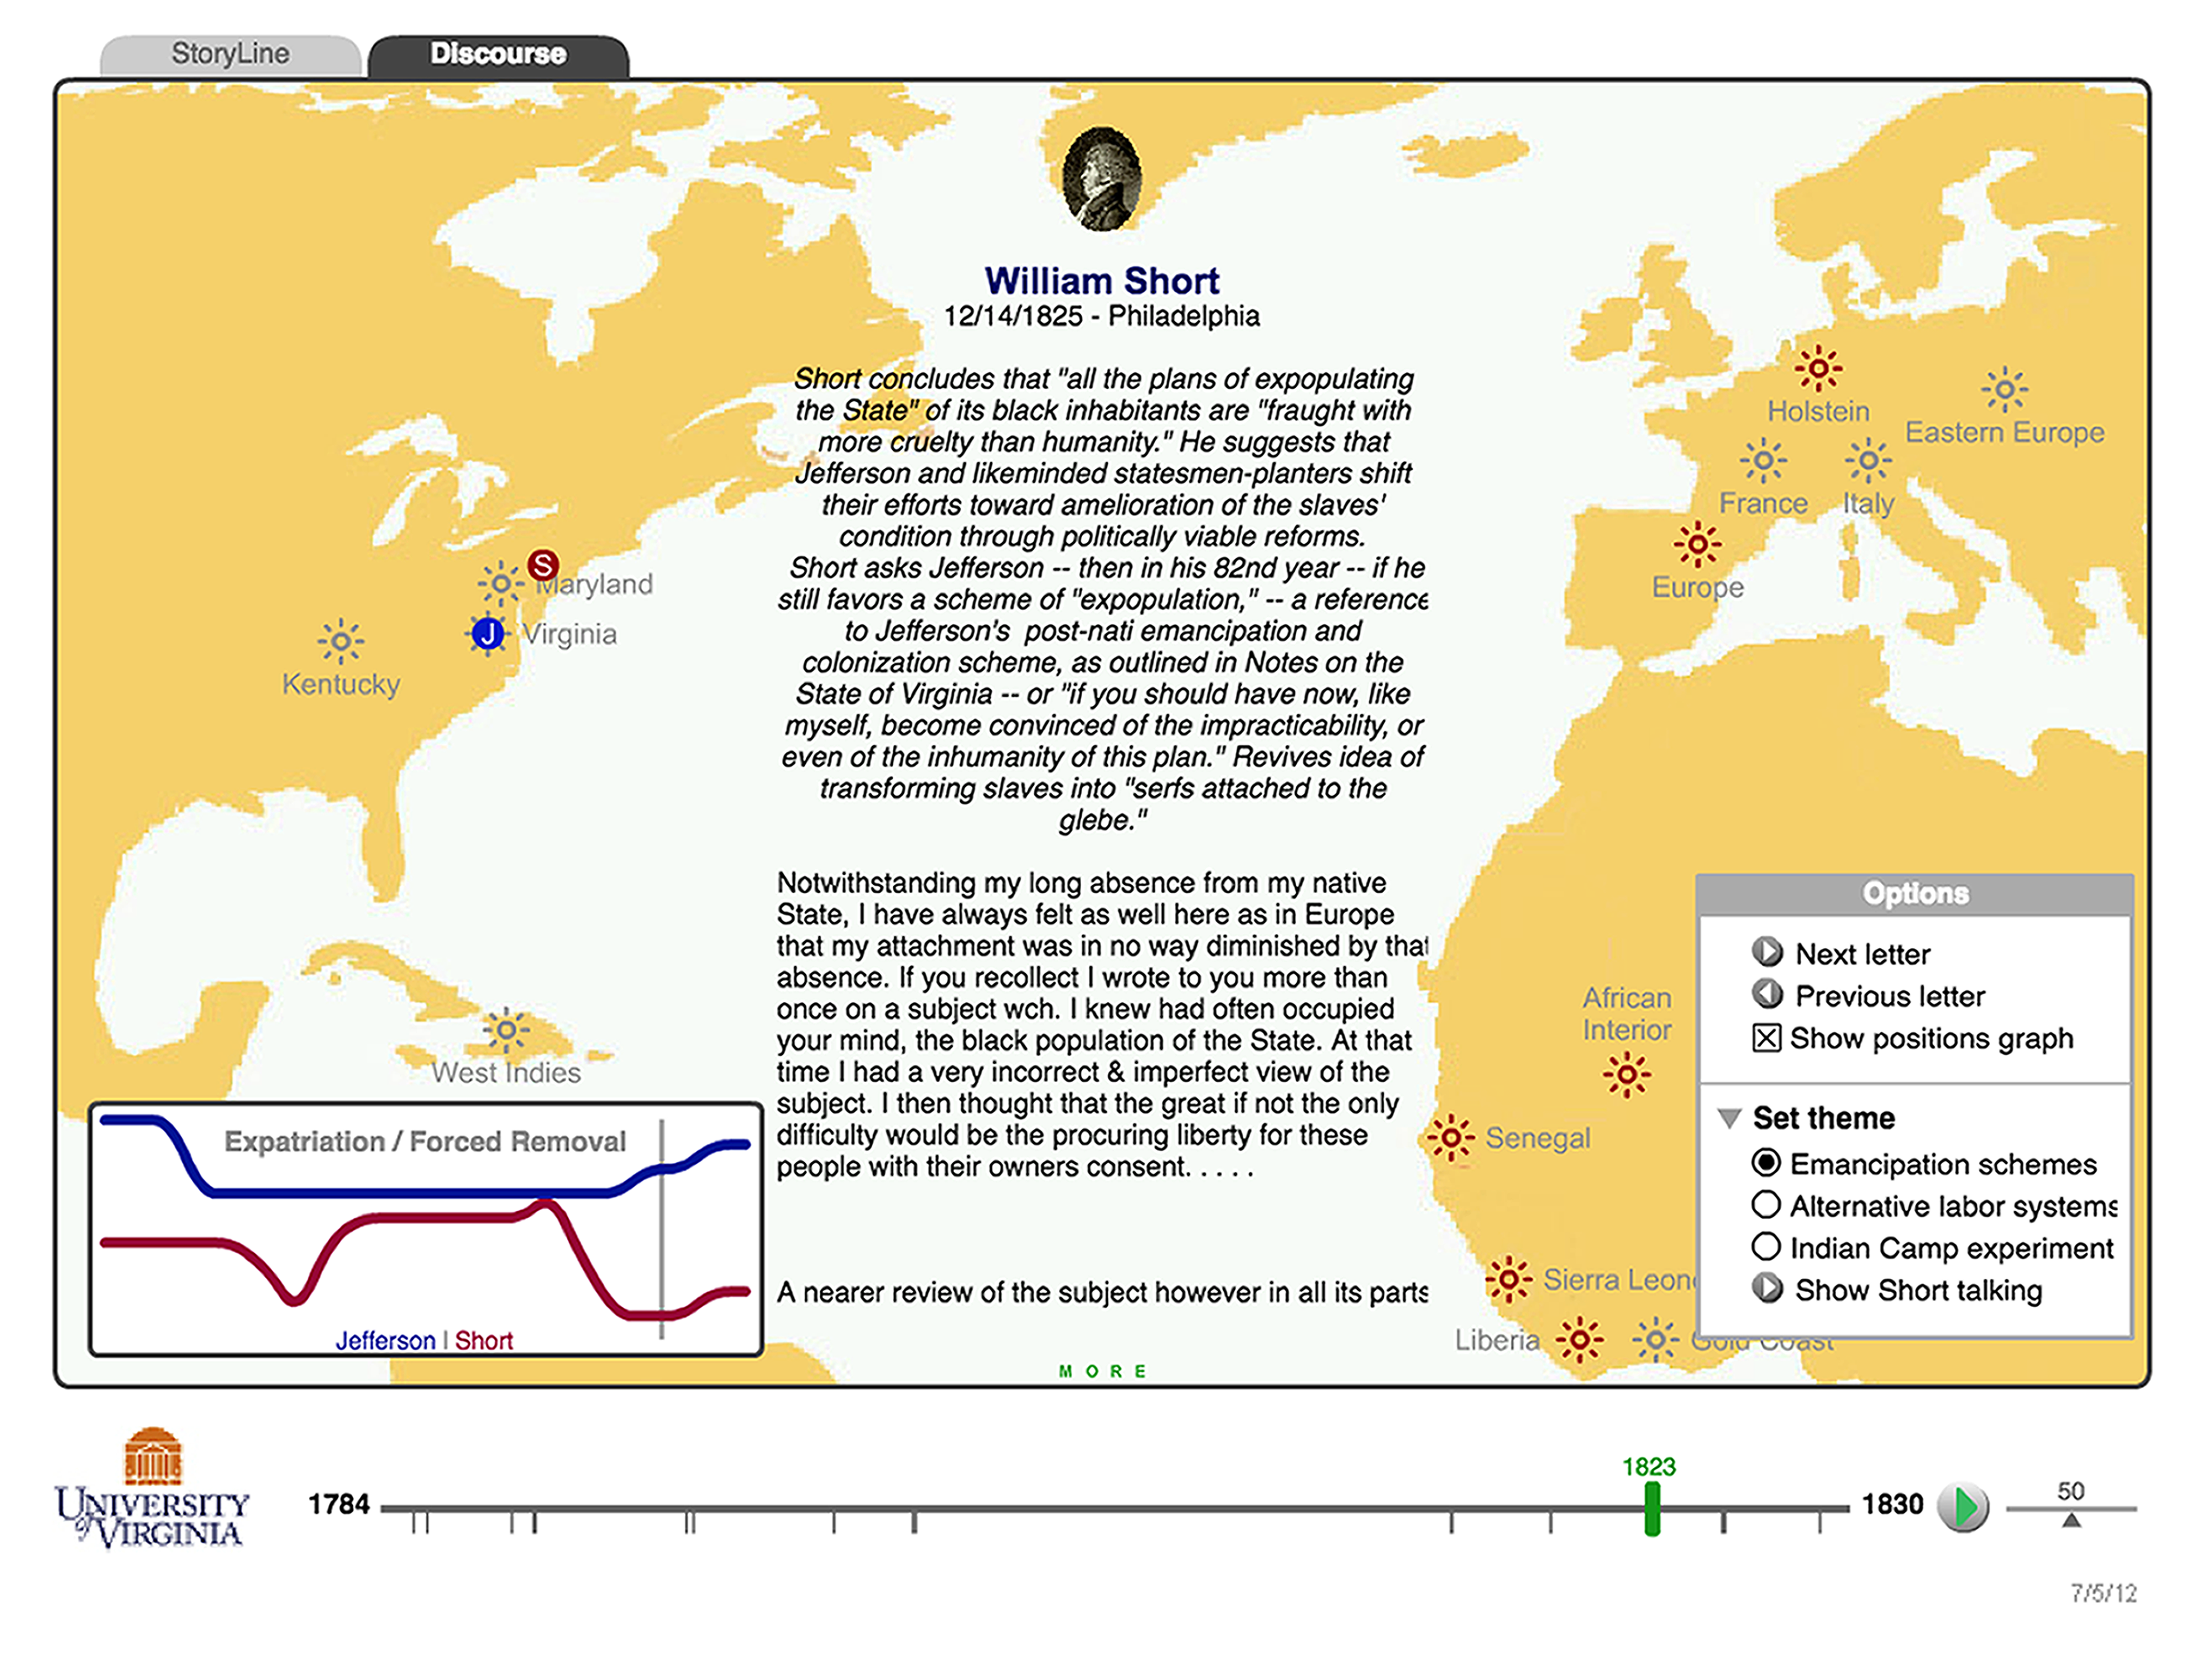 """A screenshot from the Discourse view of the """"Notes on the Future of Virginia: The Jefferson---Short Letters"""" website, which features a map of the Atlantic in the background, informational text, and a portrait of William Short."""